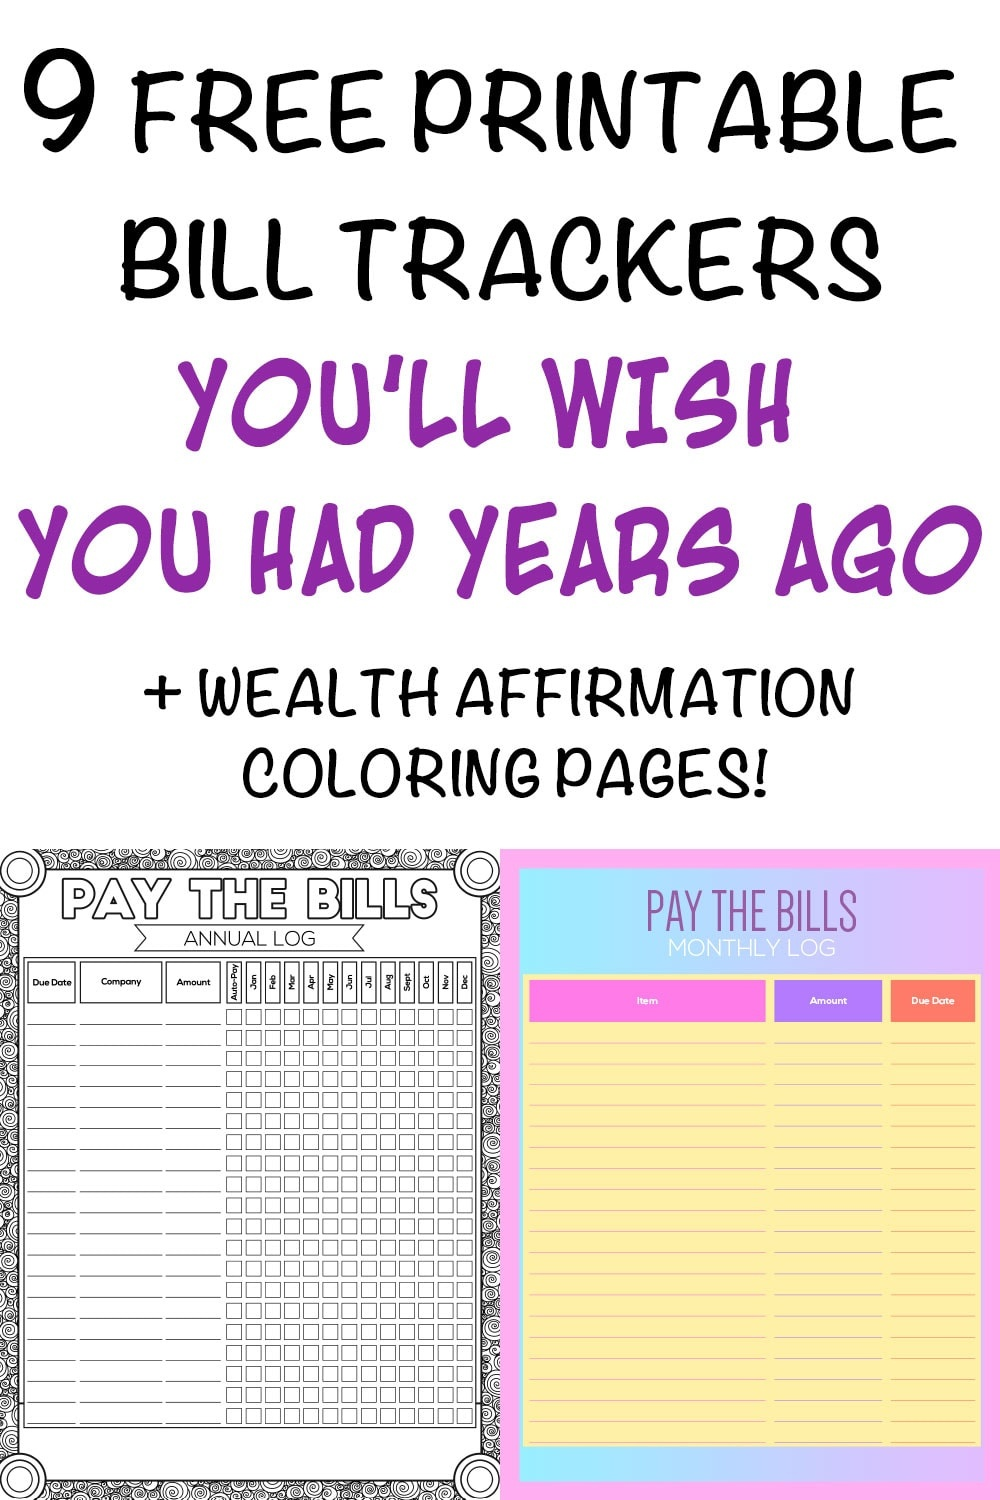 9 Printable Bill Payment Checklists And Bill Trackers - The Artisan Life - Free Printable Bill Checklist